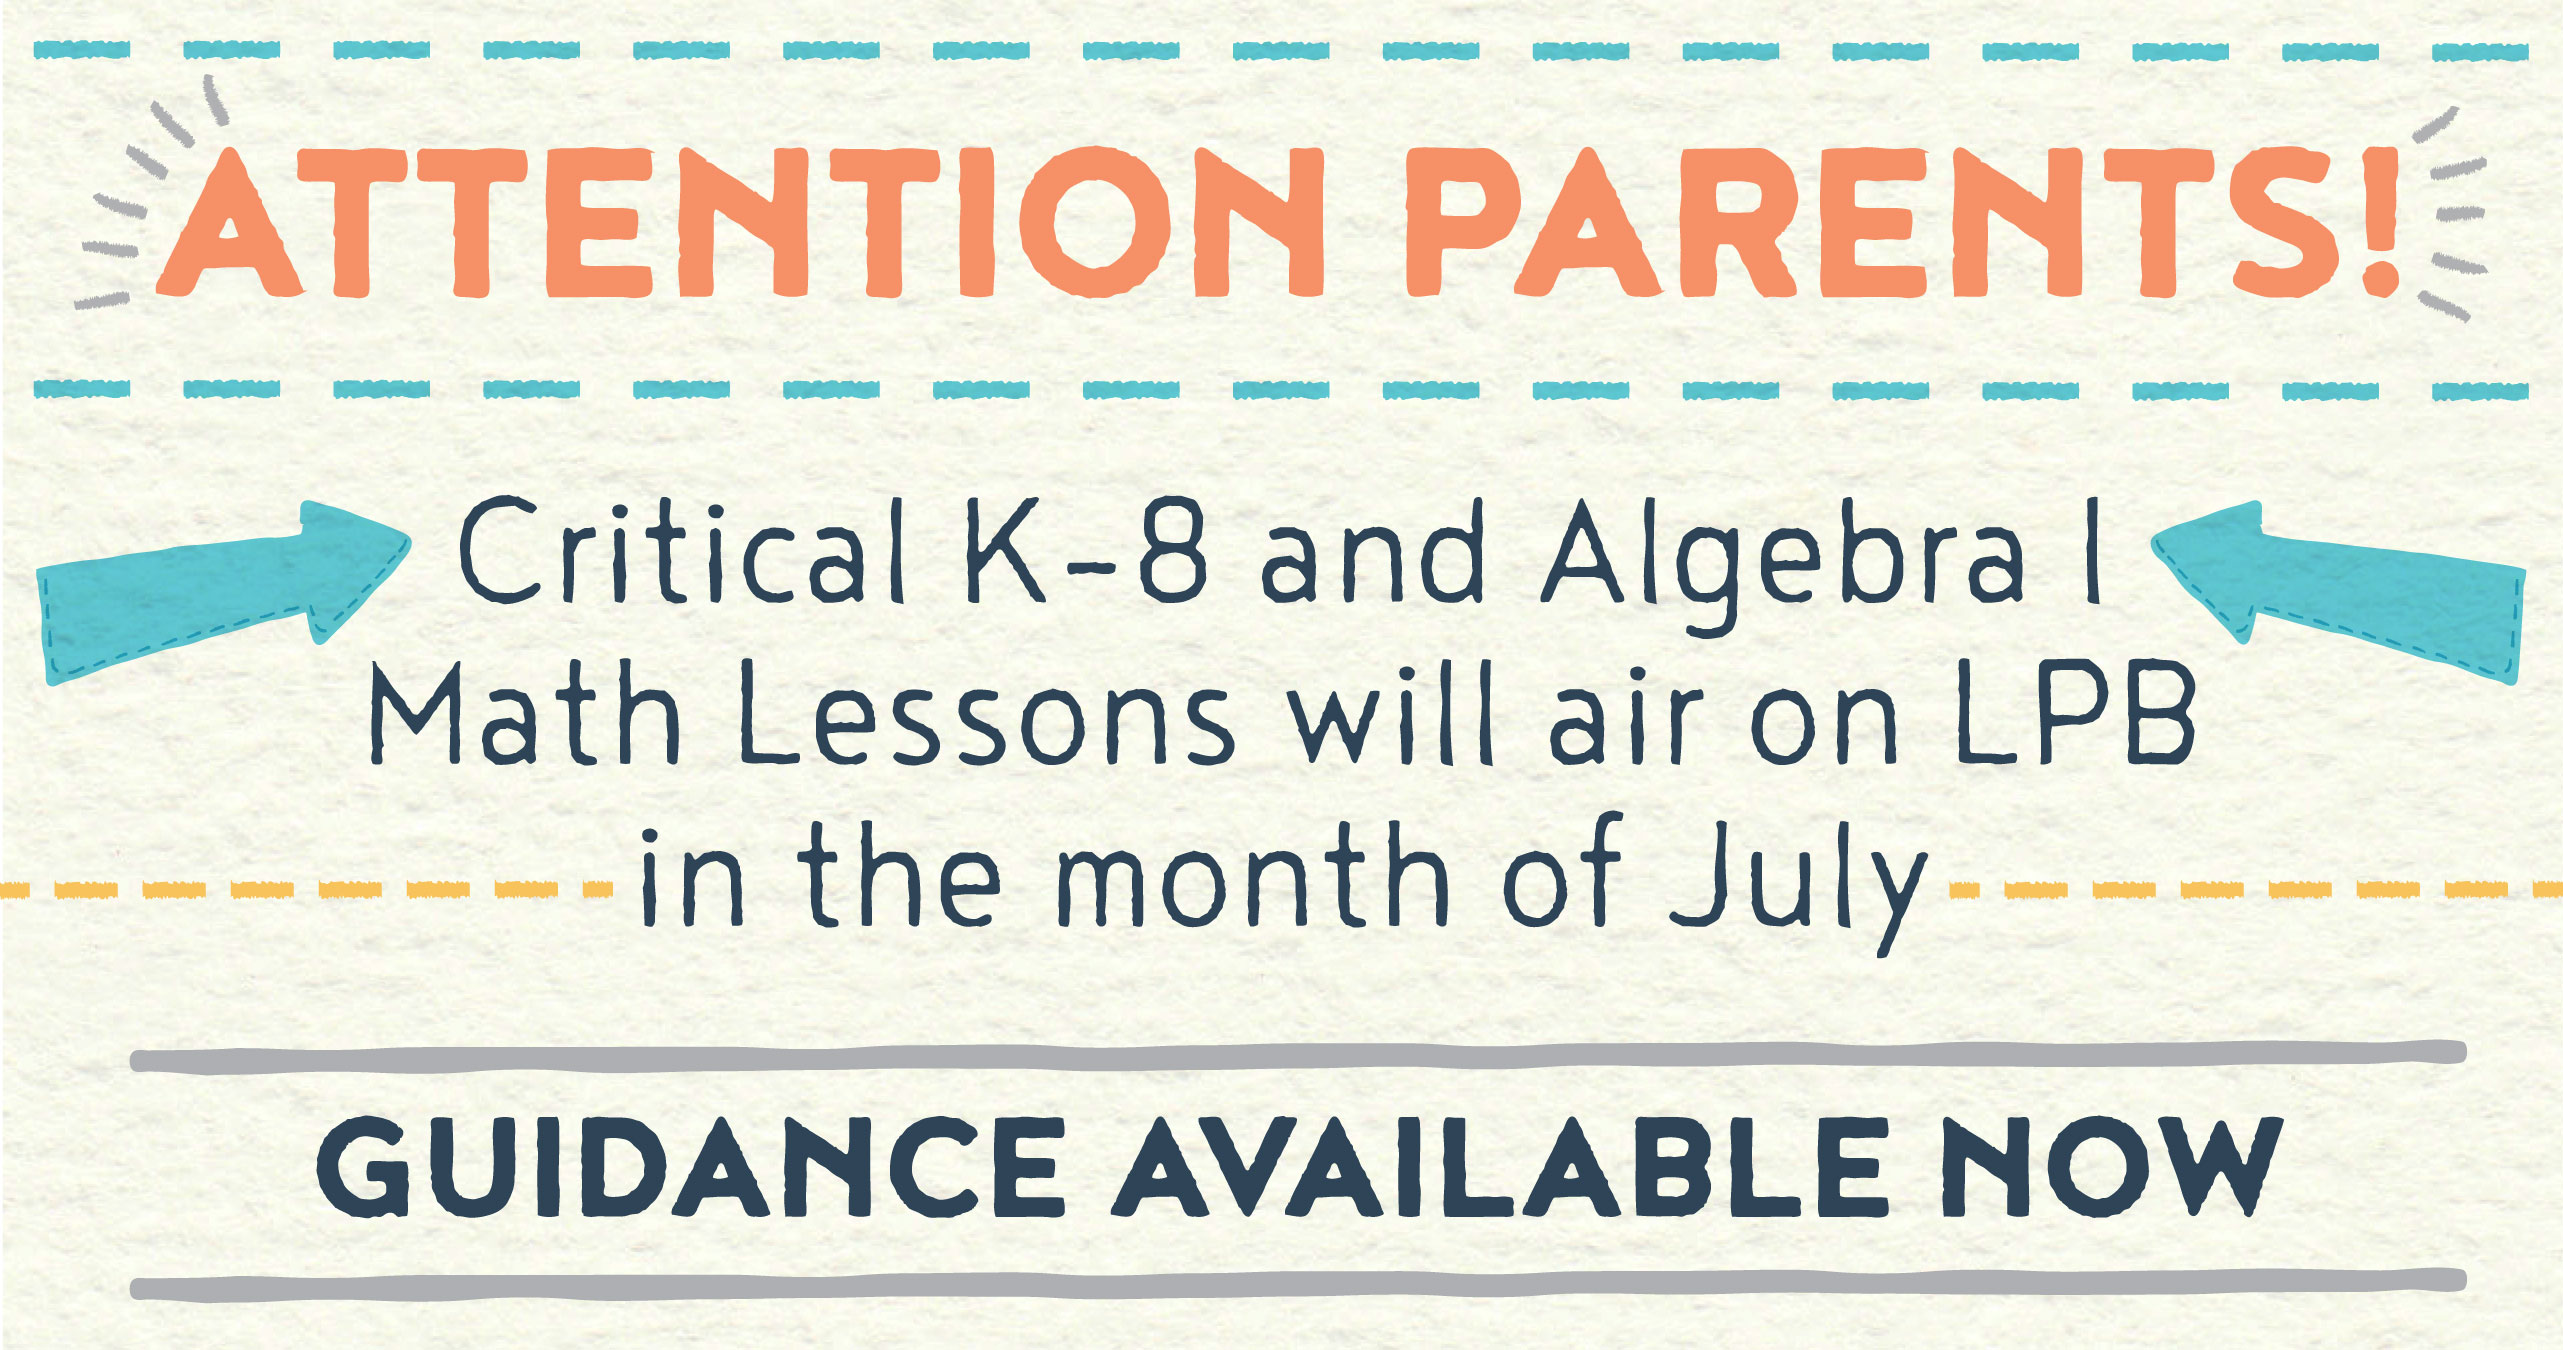 Attention parents! Critical K–8 Algebra I Math Lessons will air on LPB in the month of July. Guidance available now!